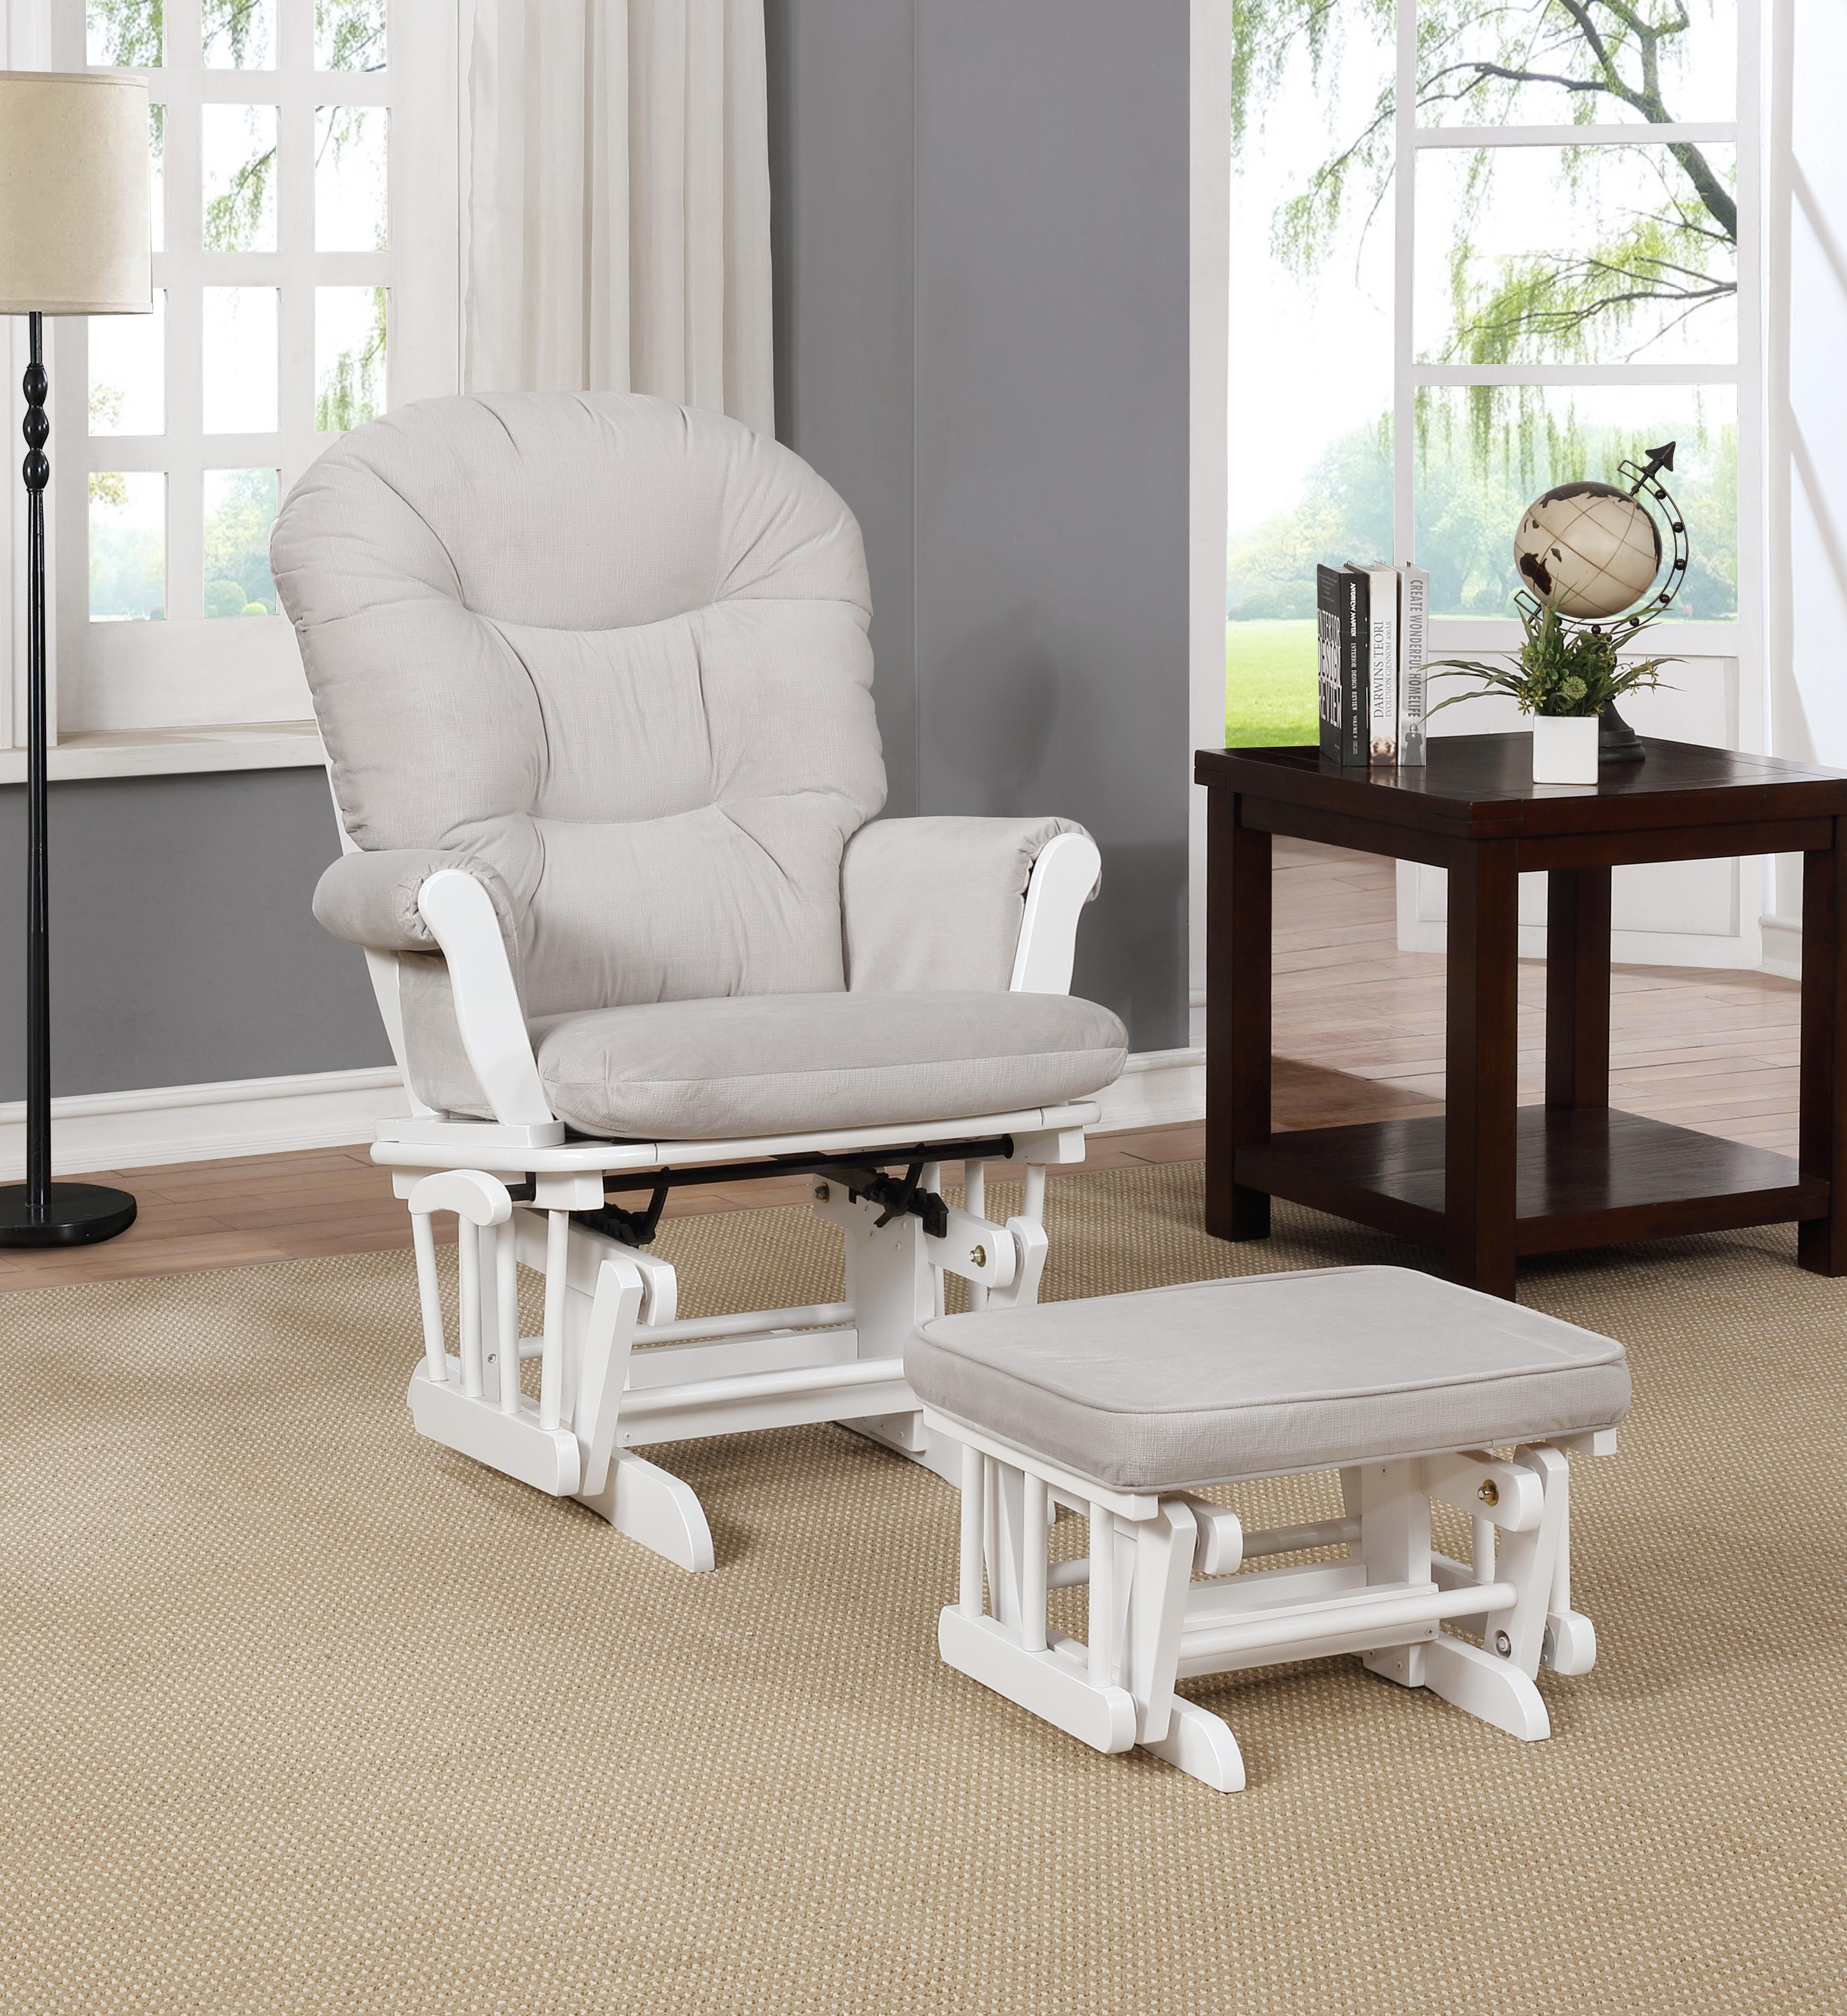 Mira Multiposition Glider and Ottoman Set -Cushion Color:Gray,Finish:White